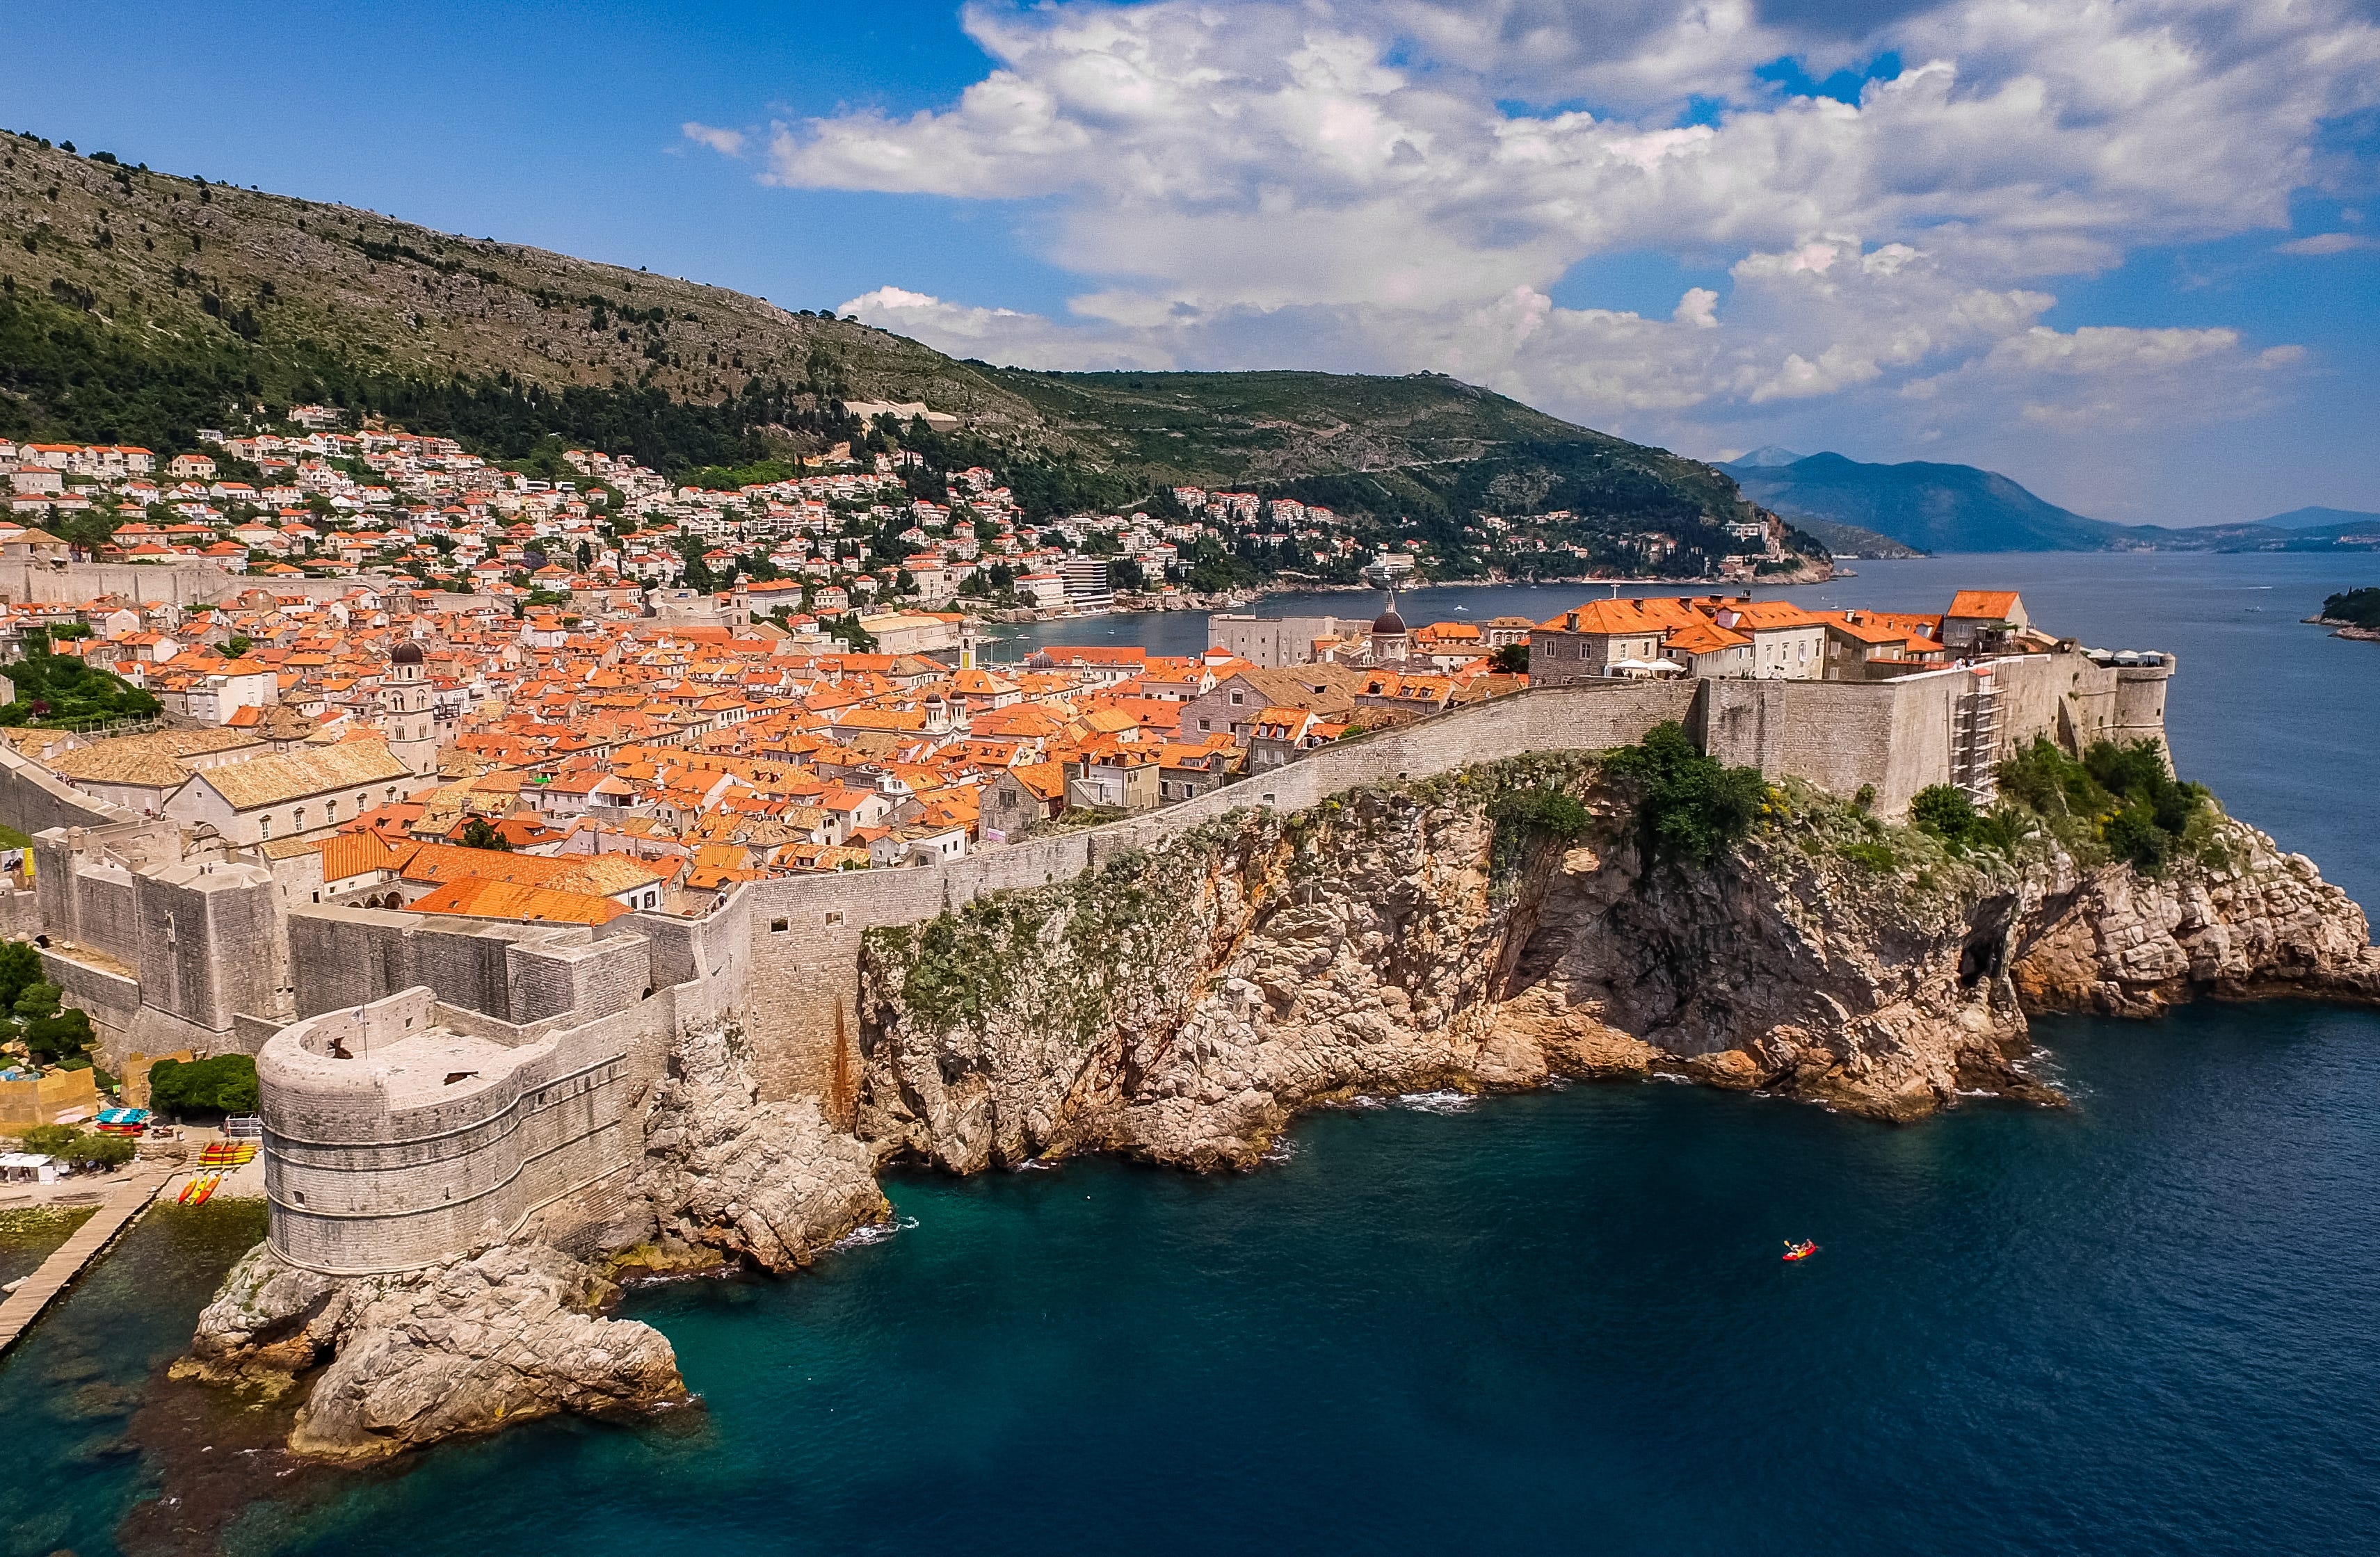 Croatia: You've seen these spots on 'Game of Thrones'; now see them for yourself